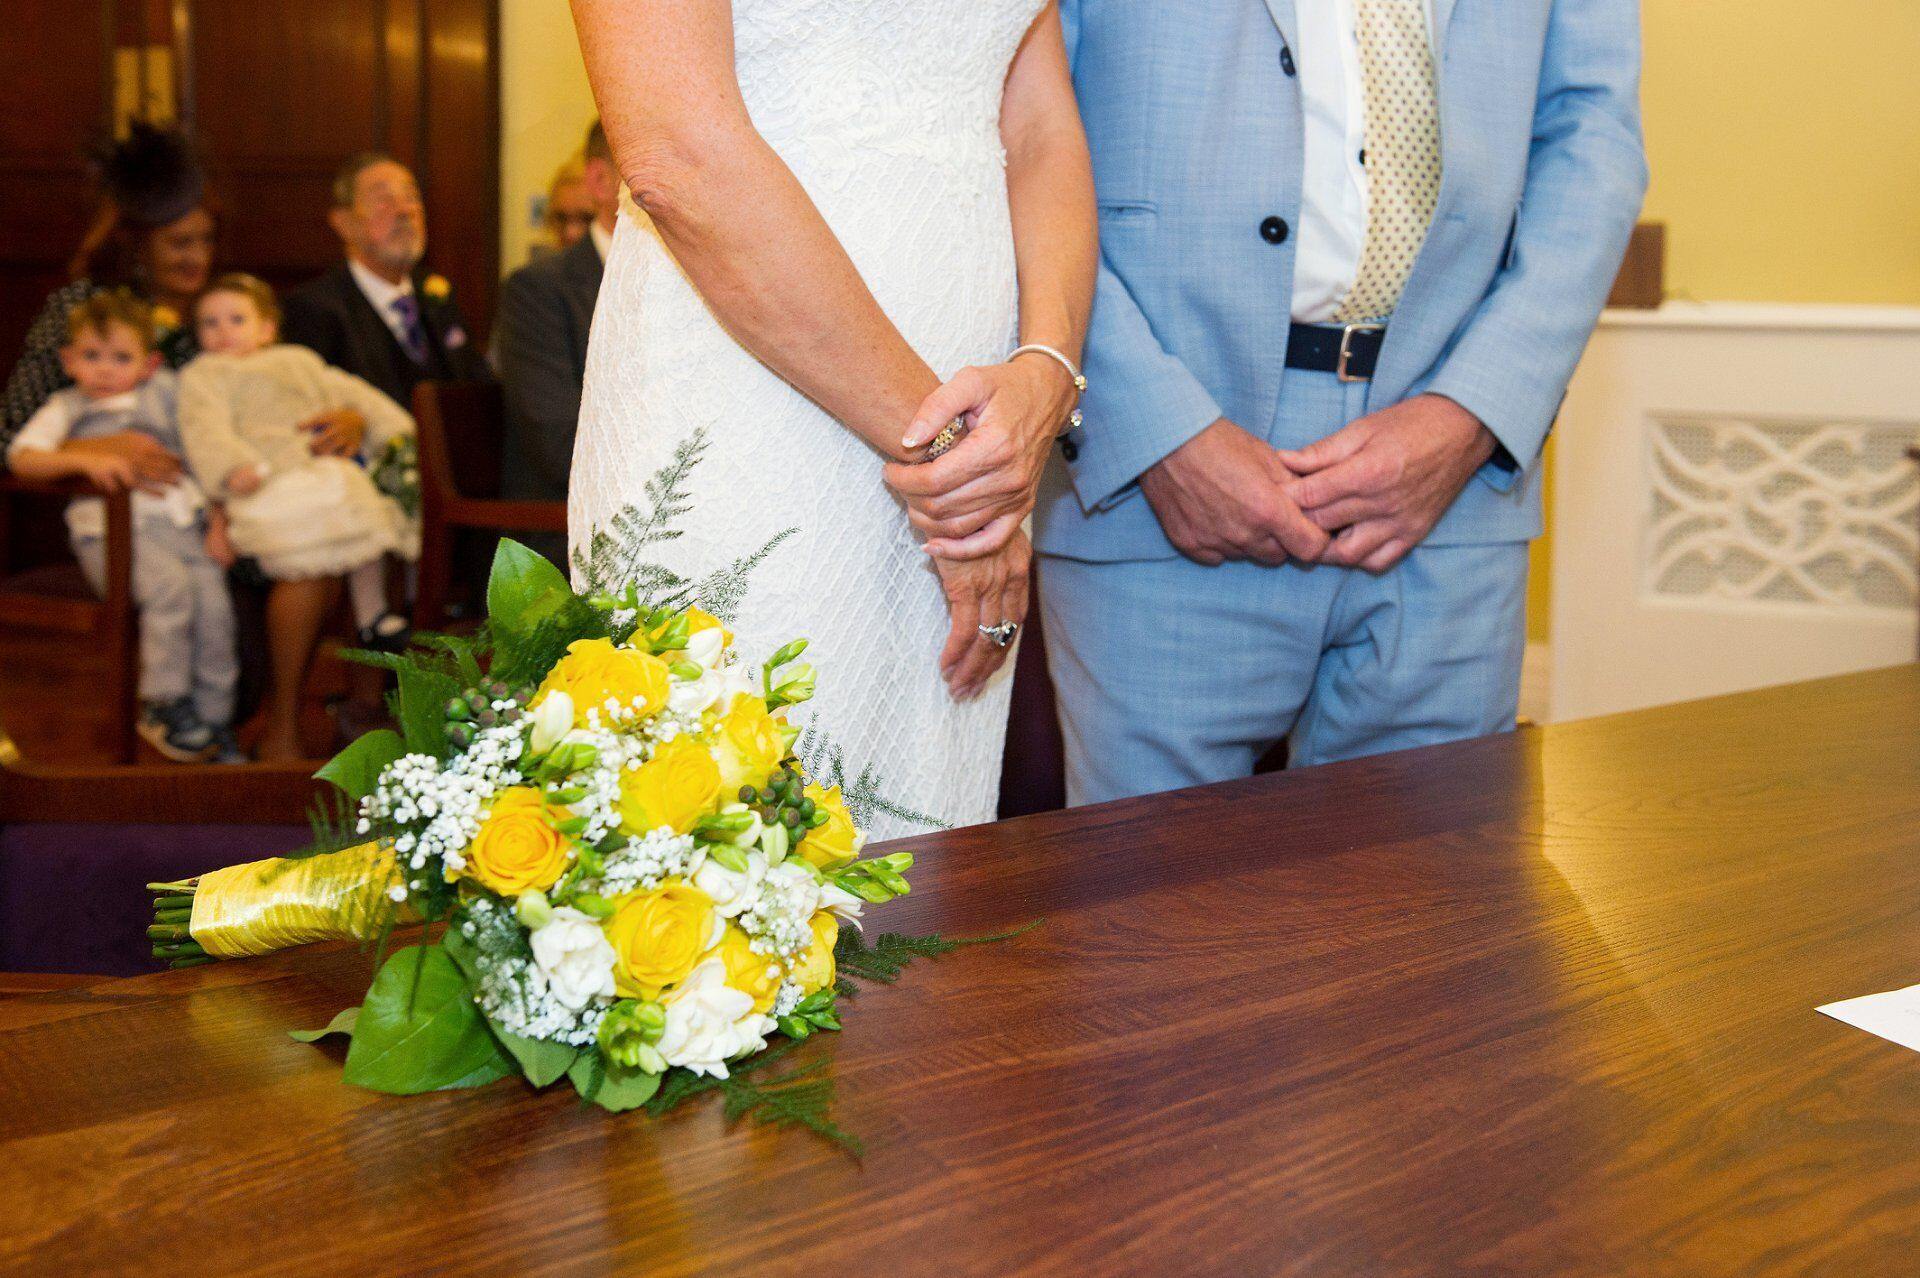 cream and yellow flowers - roses and fresias - on the ceremony table in the brydon room at chelsea old town hall